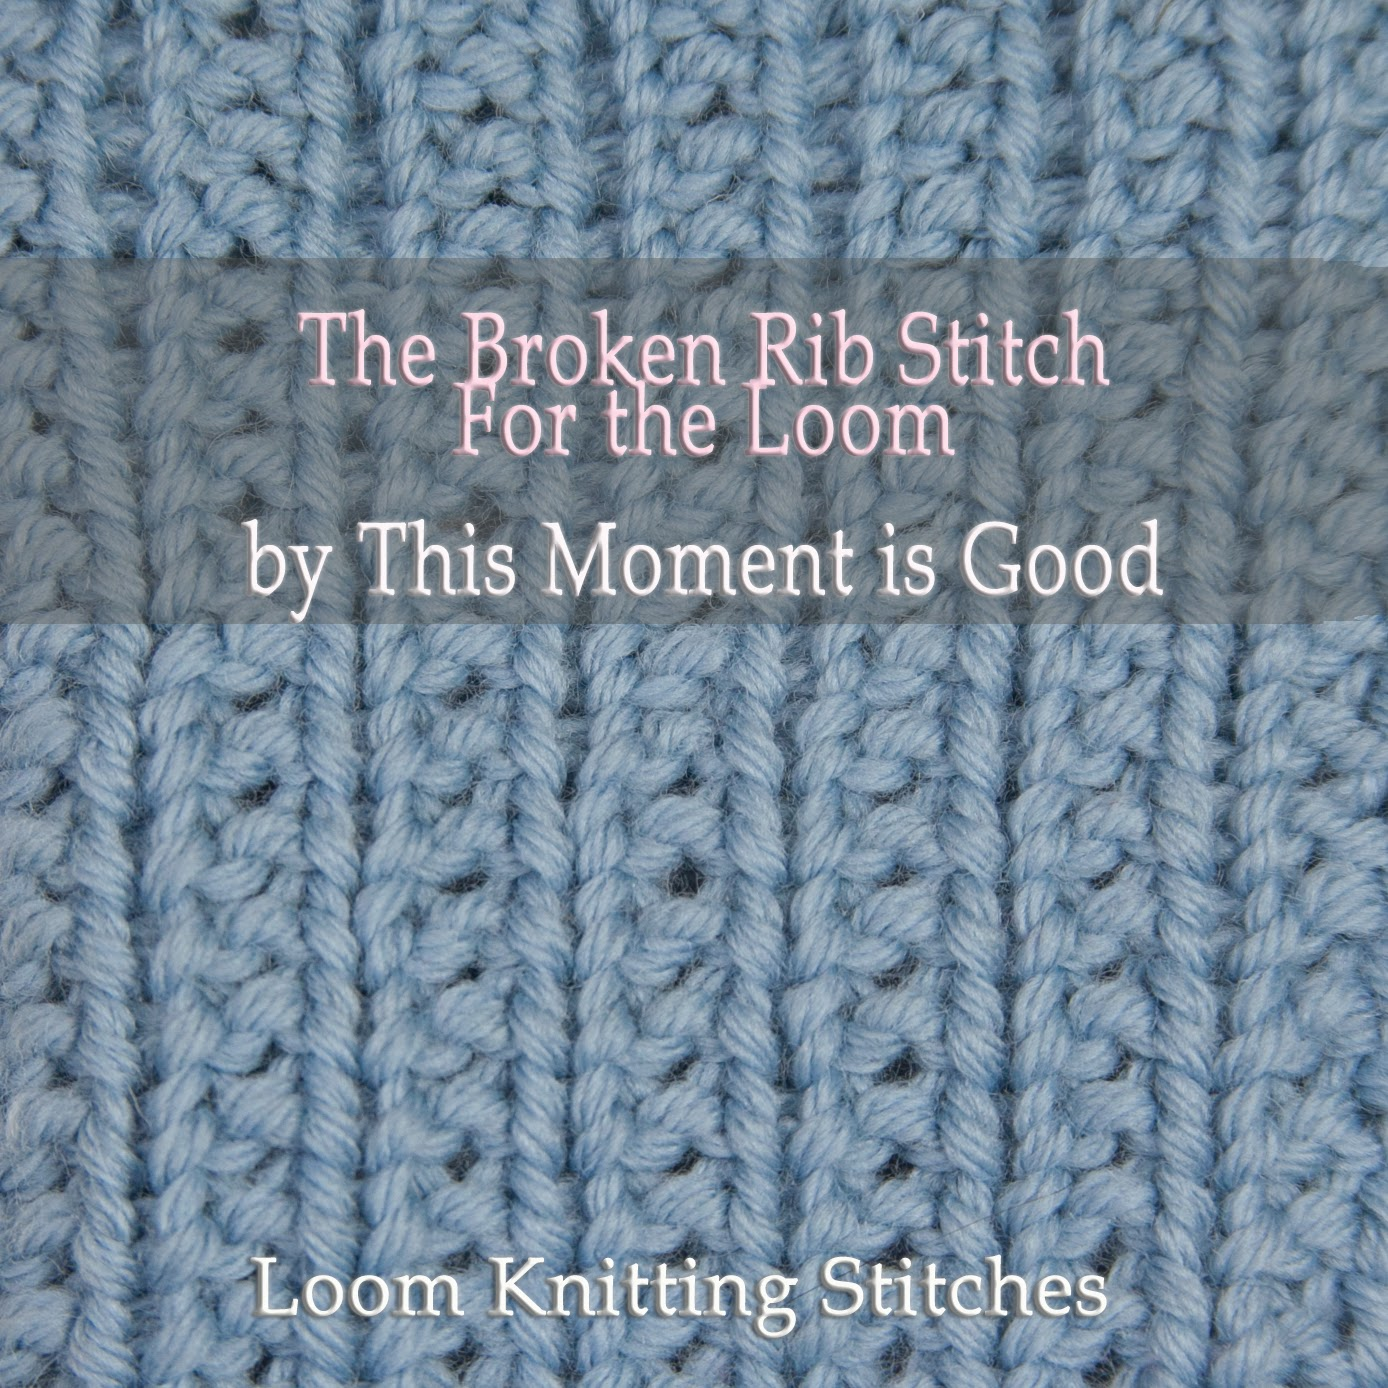 Loom Knitting Stitch: Broken Rib Stitch | Loom Knitting by This ...